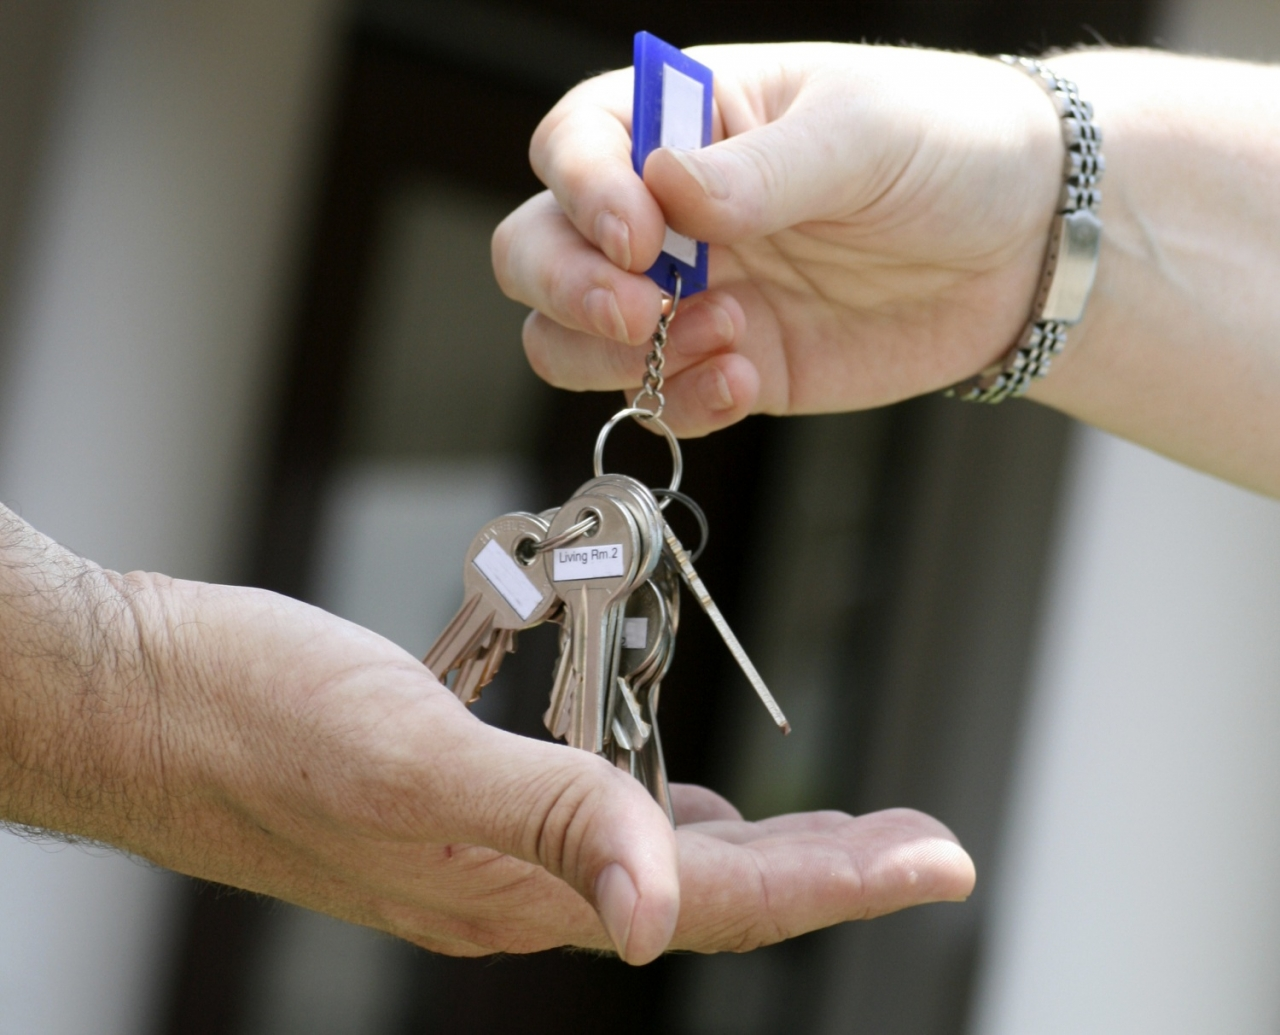 >landlords recognise vital role of letting agents